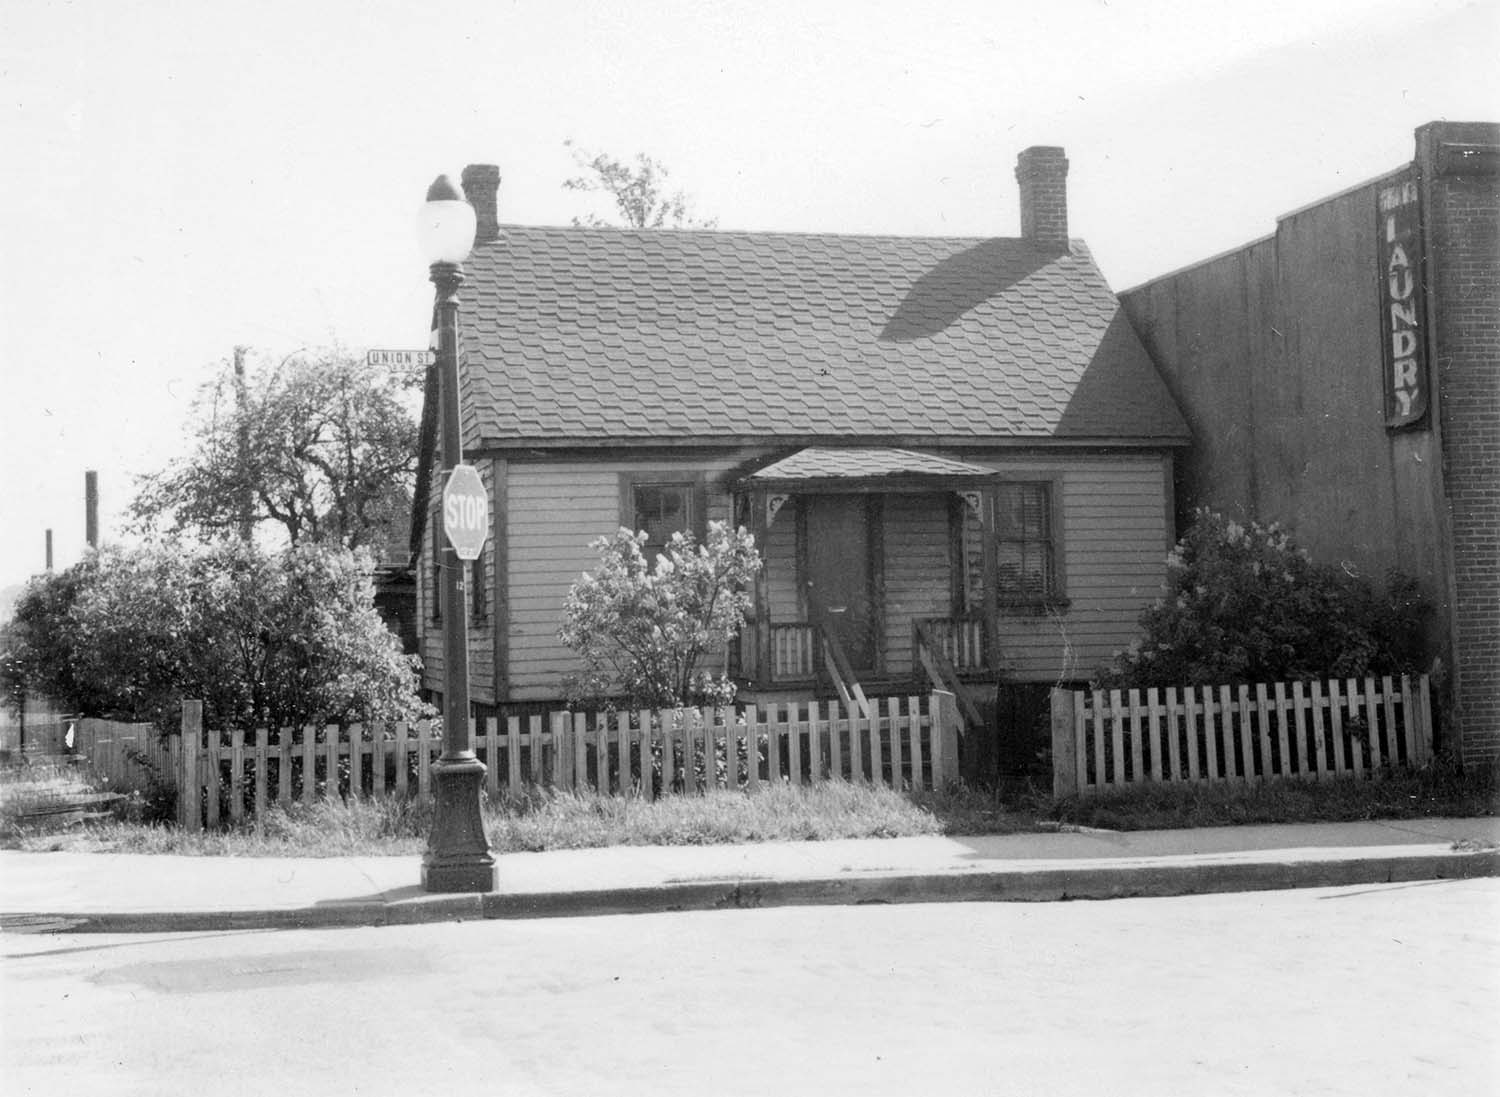 278 Union Street and 809 Gore Avenue, 1972. Photograph shows the house at 278 Union Street beside the Union Laundry building. Reference code COV-S168-: CVA 203-68